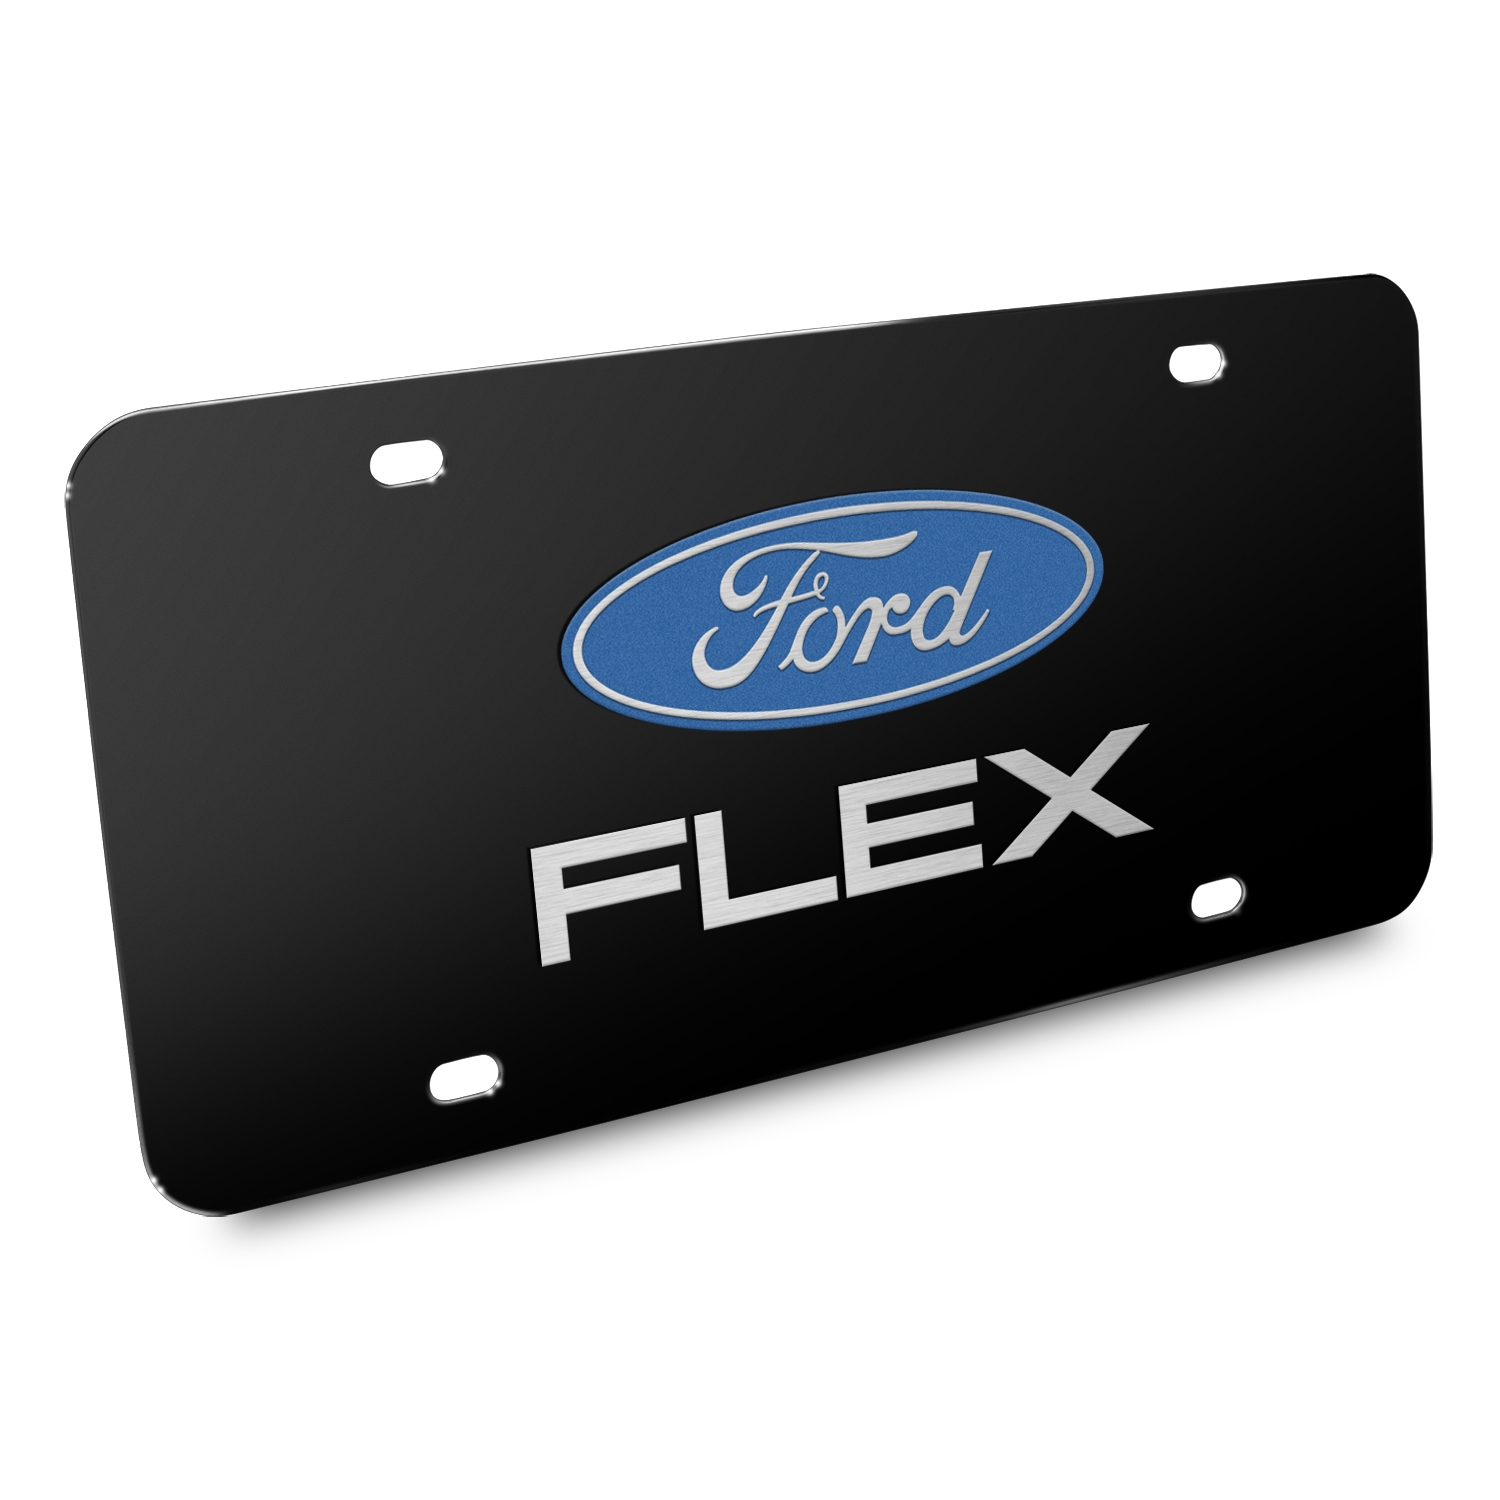 Ford Flex 3D Dual Logo Black Stainless Steel License Plate